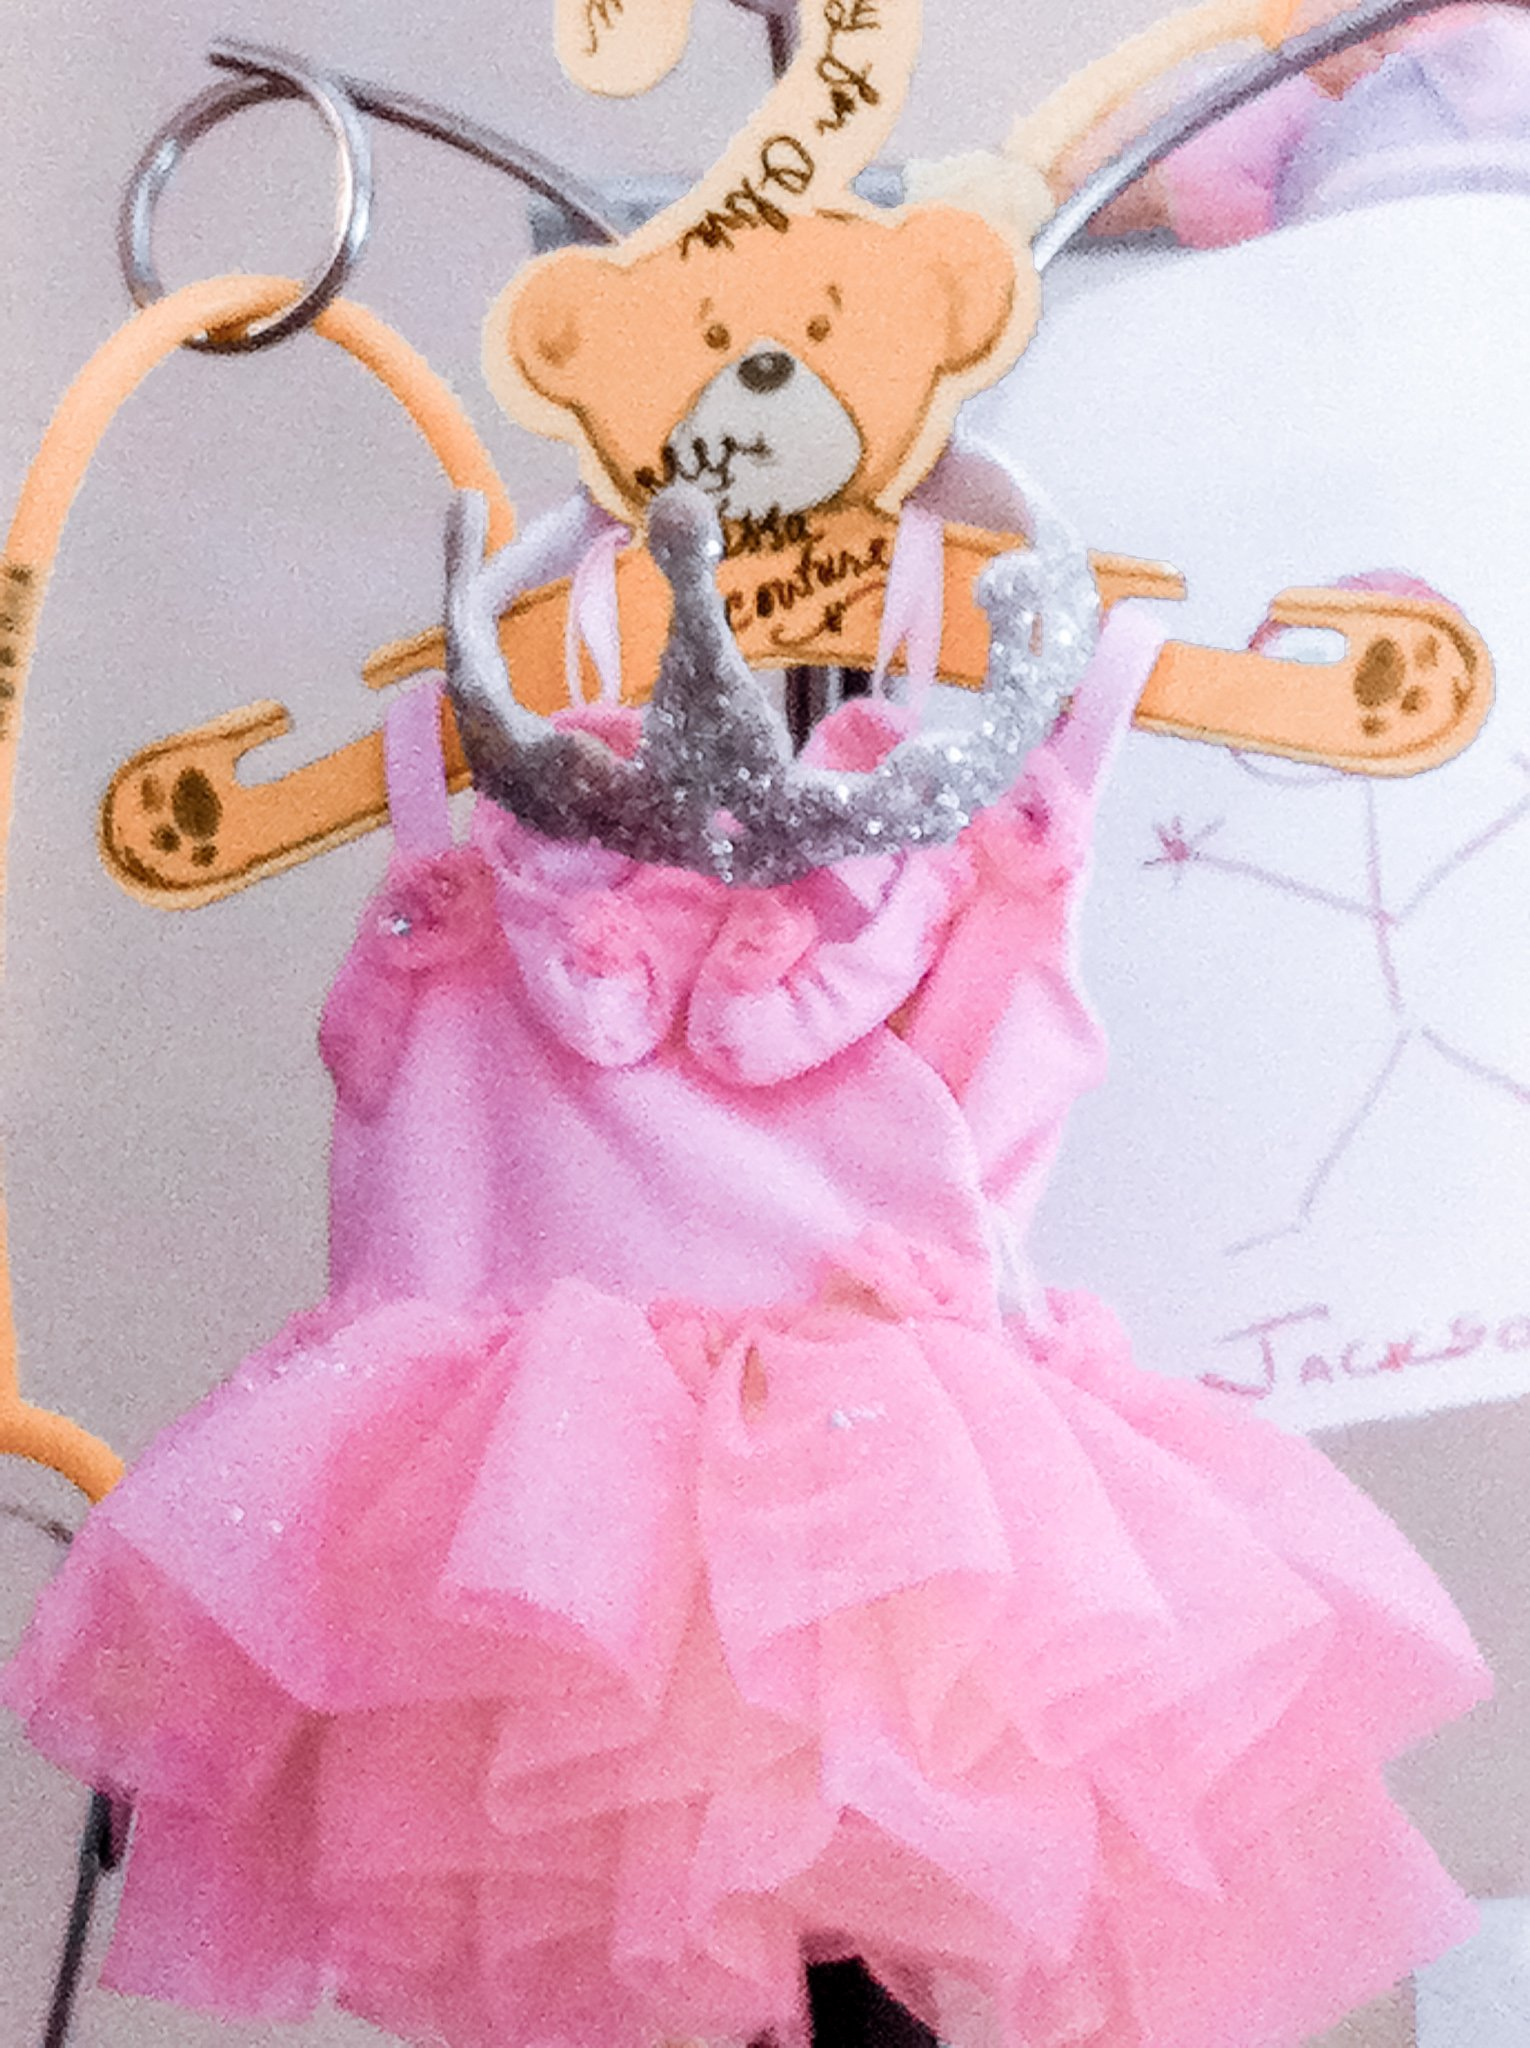 Olive's Halloween costume made with love by Nurse Jessa.